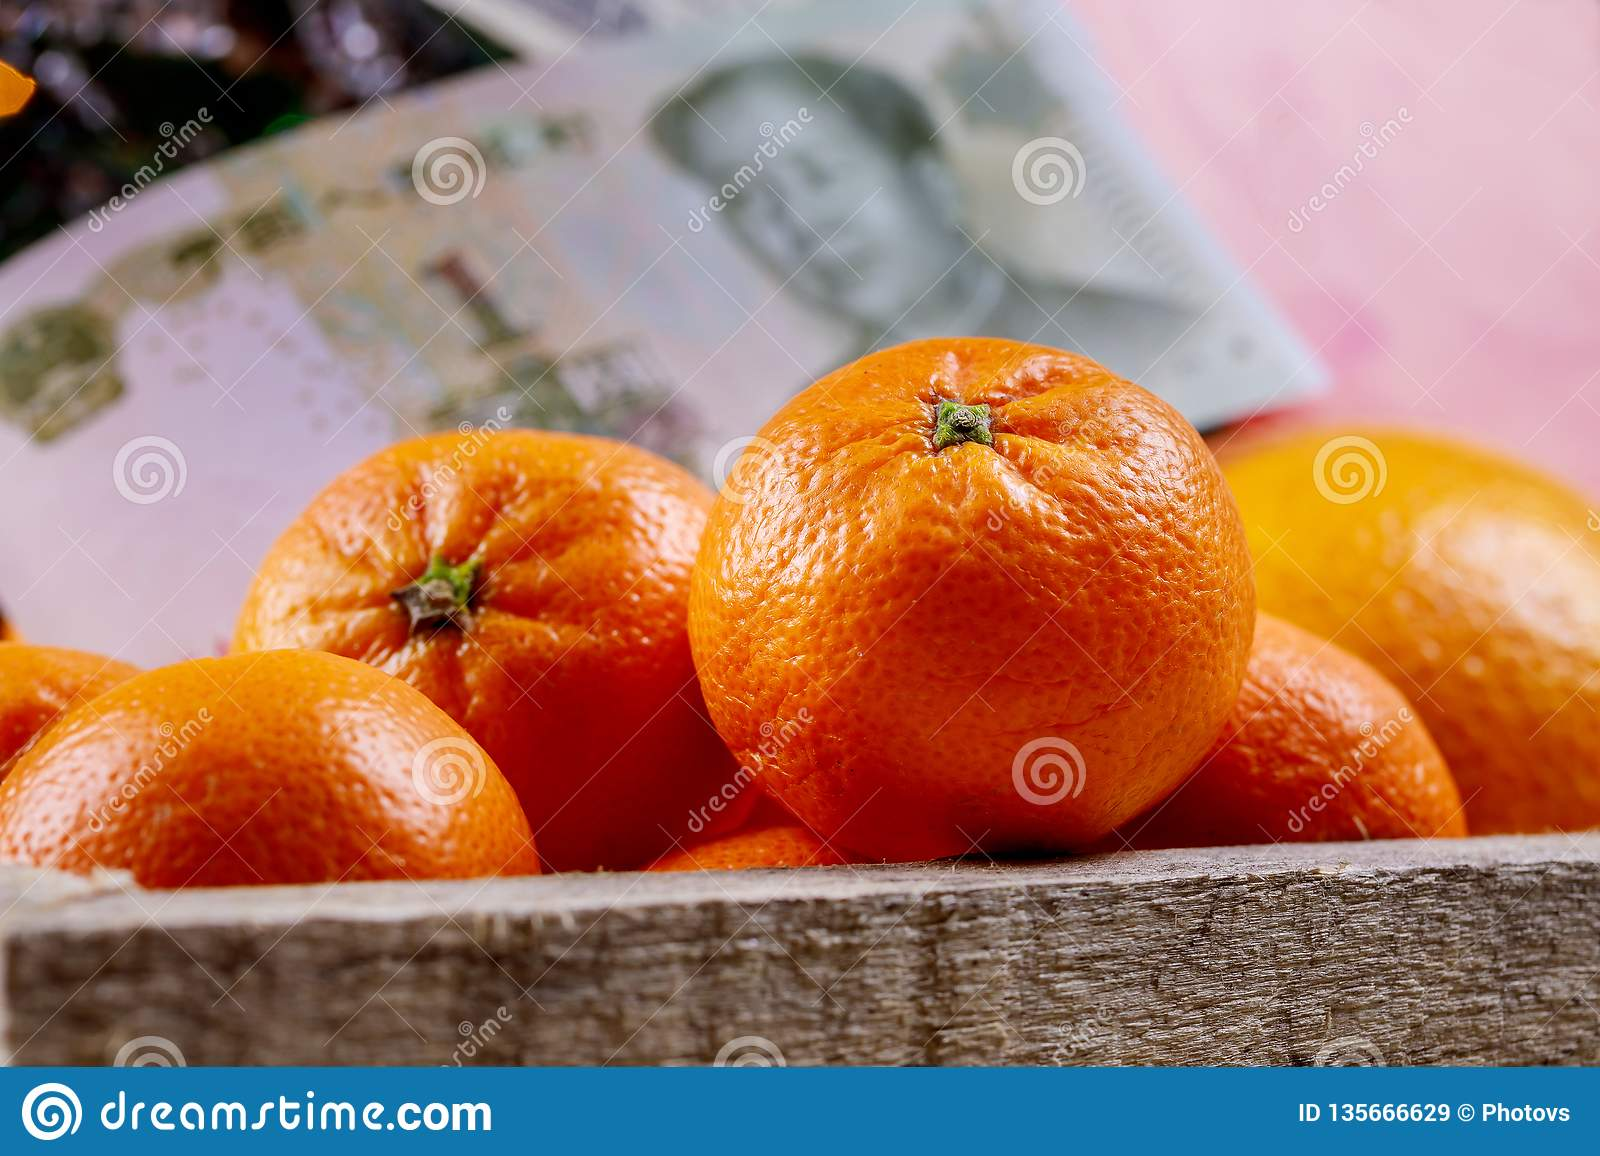 Chinese new year tangerine oranges on wooden table top